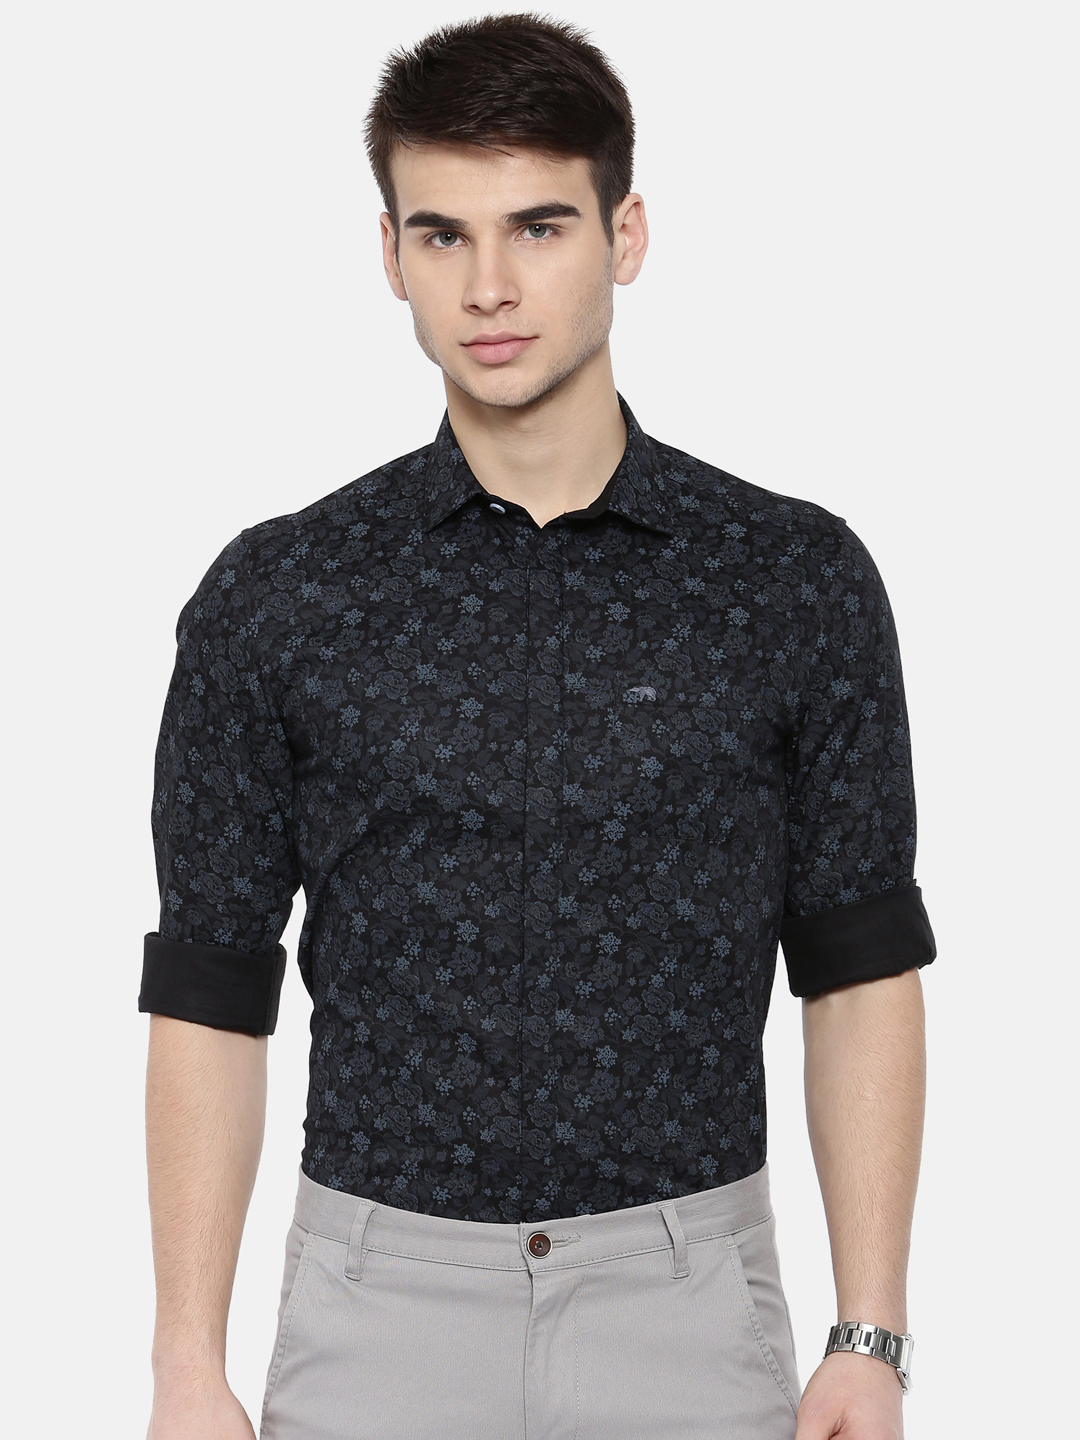 The Bear House   TBH CLASSIC FLORAL FORMAL SHIRT WITH SIDE PANELS.